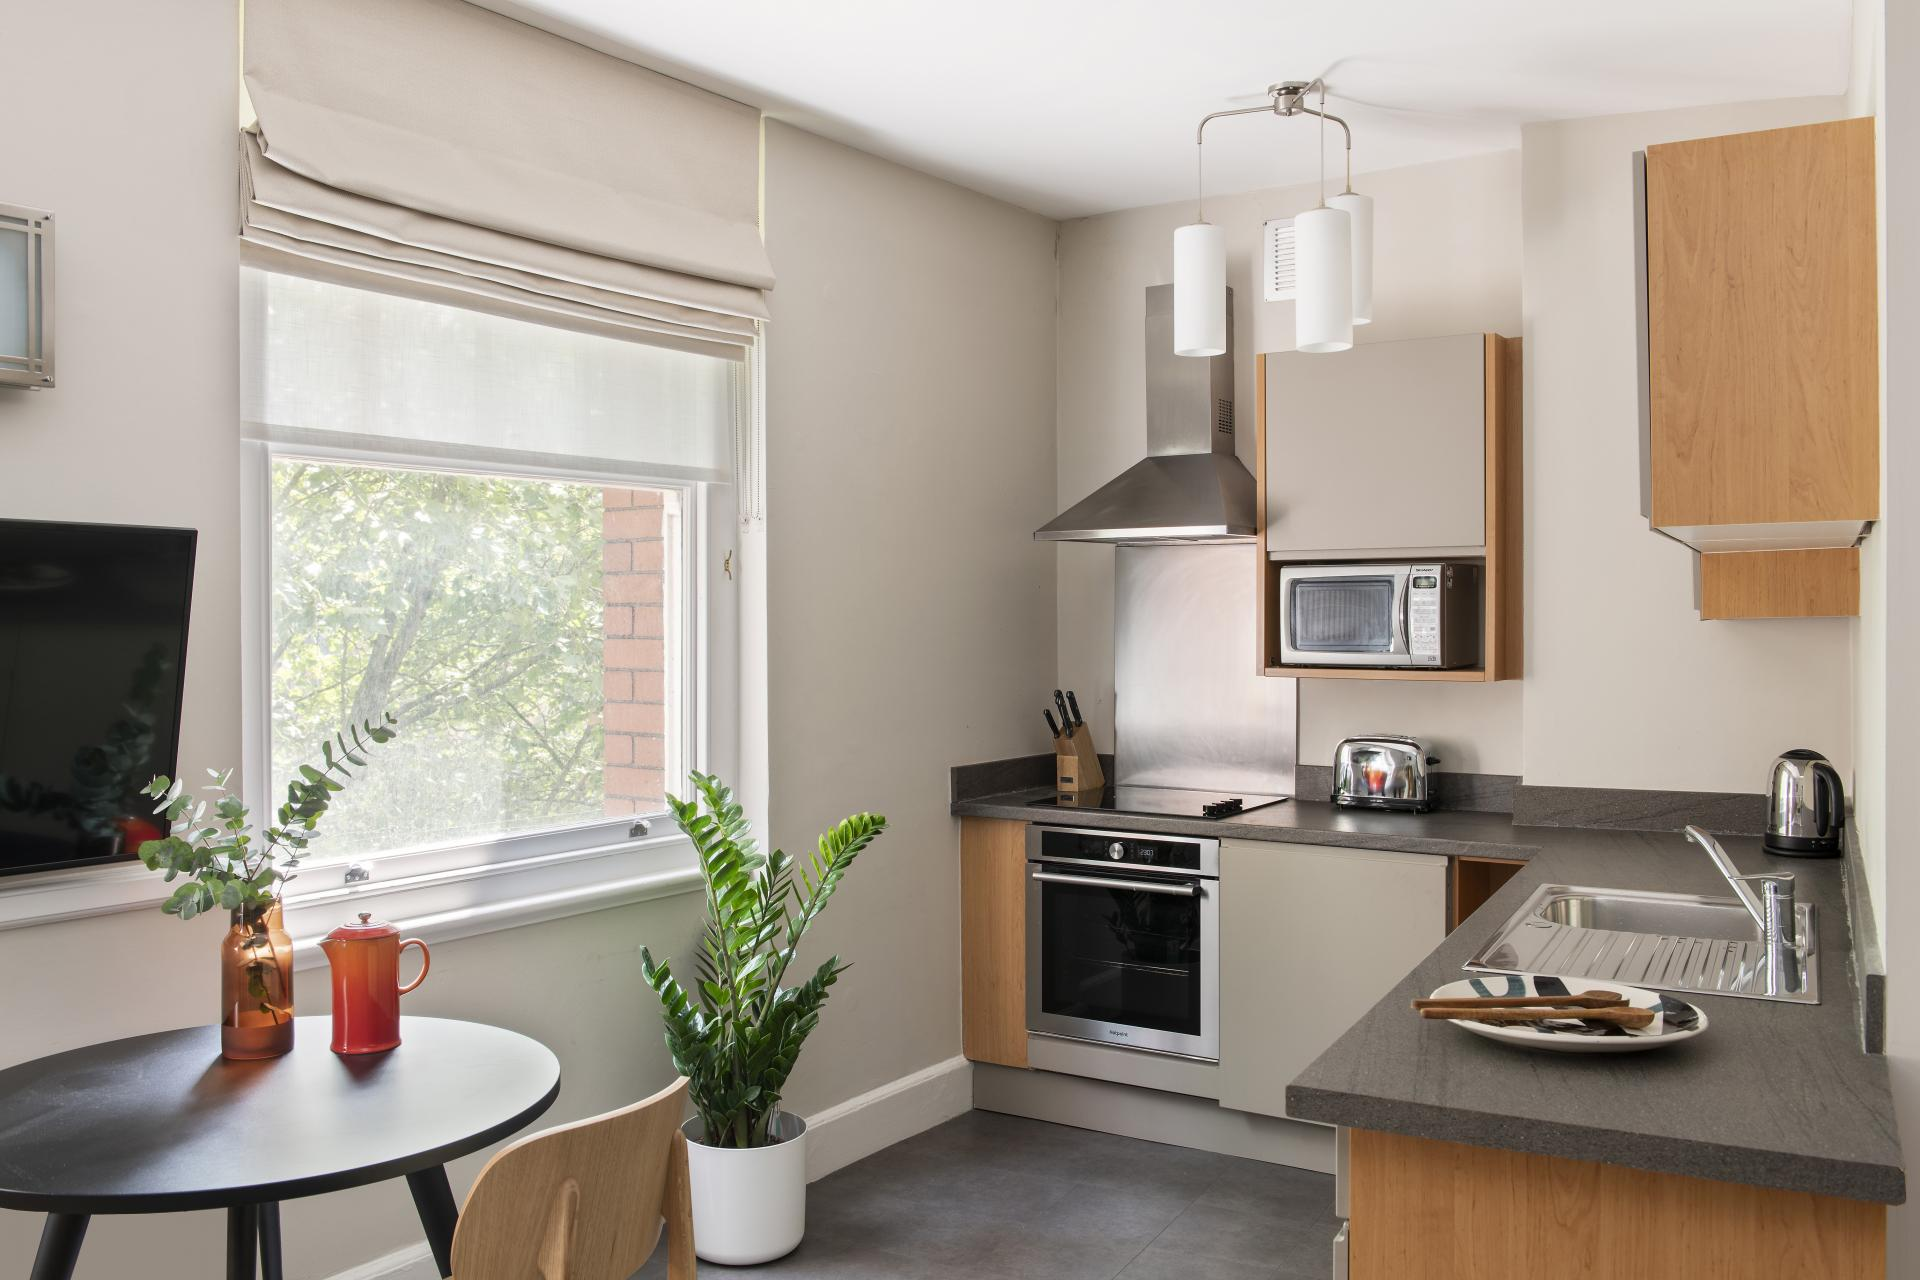 Kitchen at Cove West India House, Waterfront, Bristol - Citybase Apartments